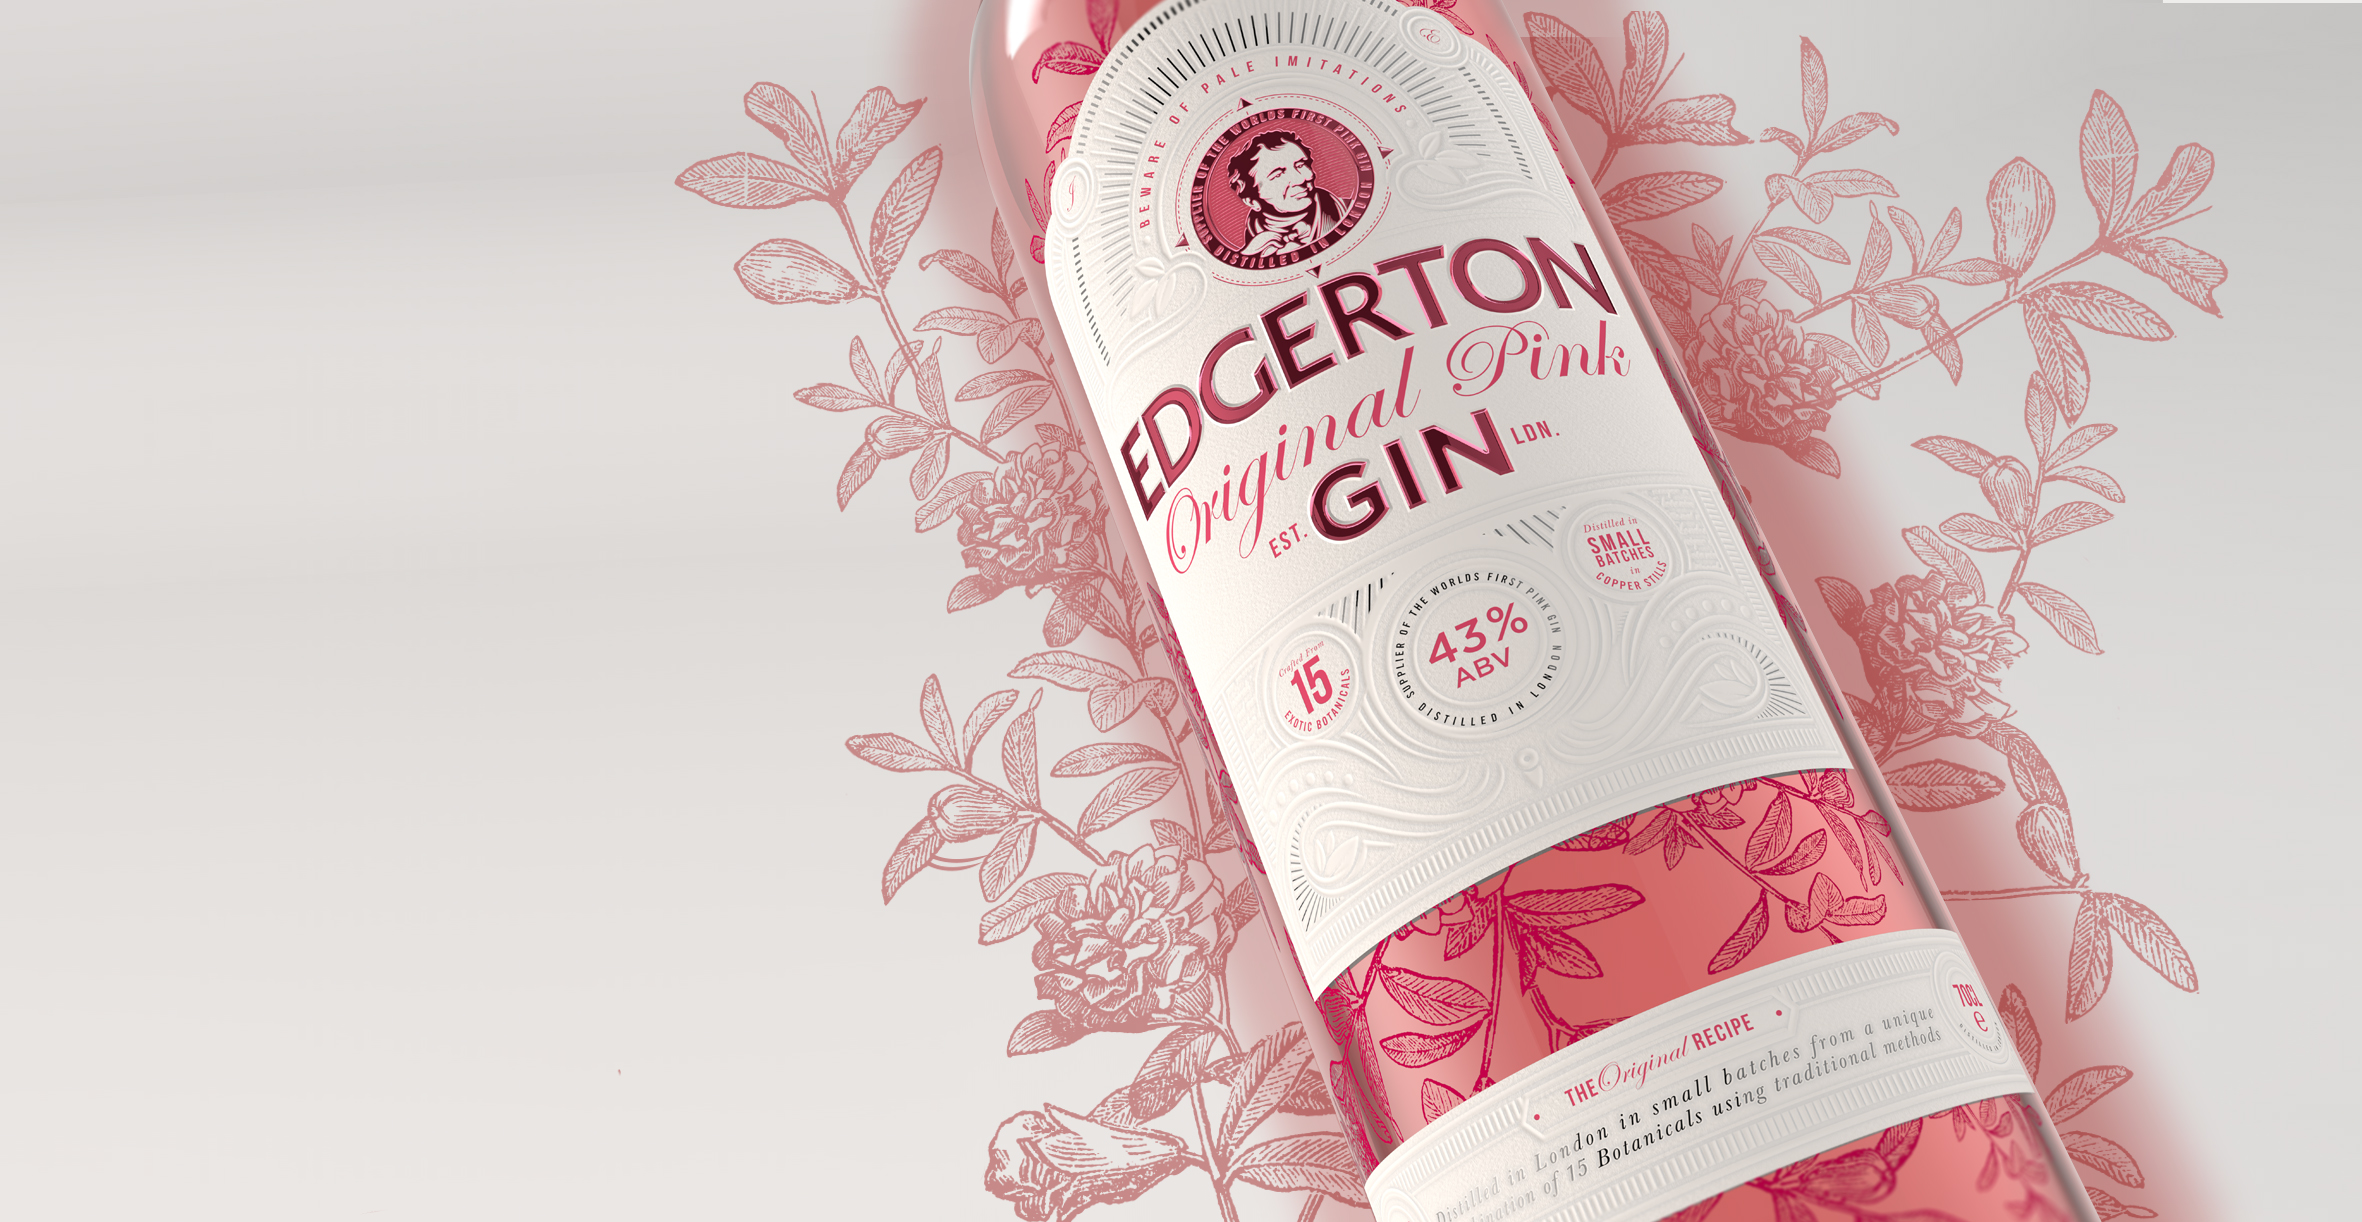 Brand identity and gin bottle label design for Edgerton Gin by Design Happy London - Gift box promotional packaging